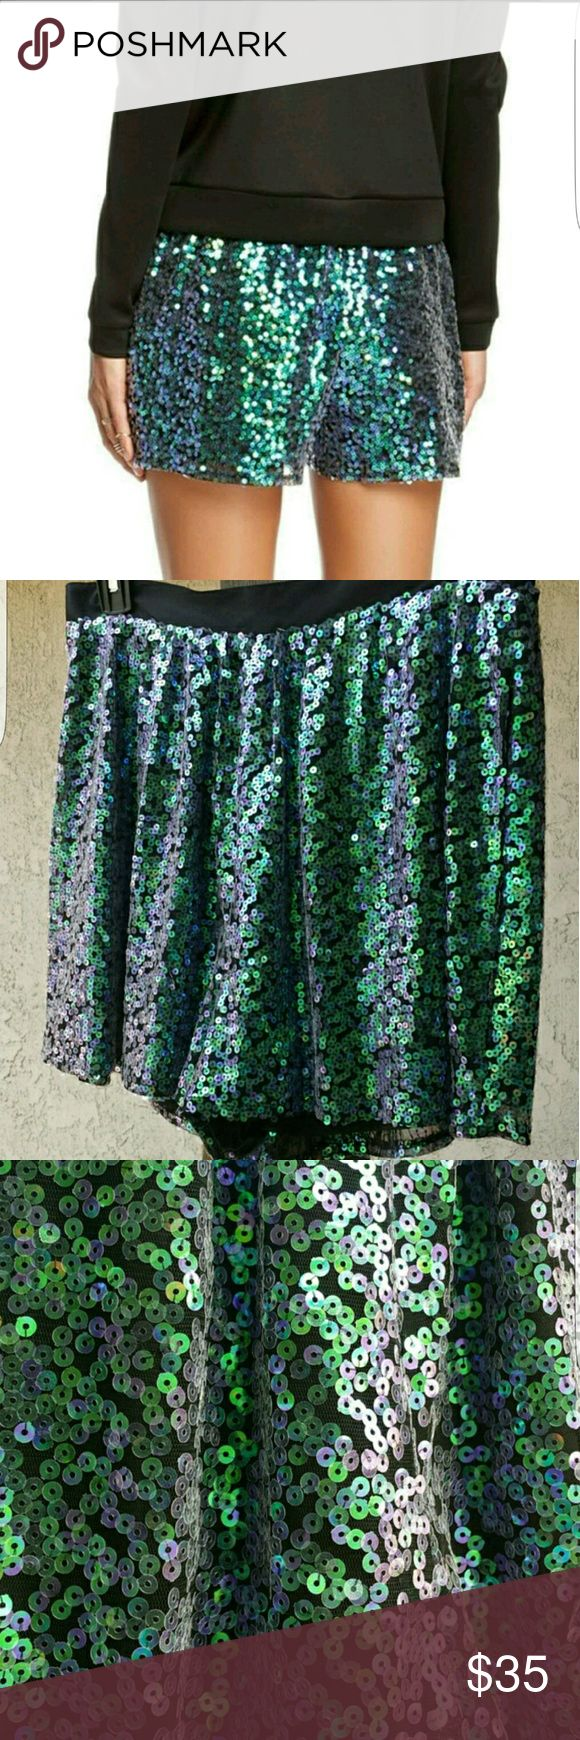 """BCBGeneration iridescent sequined shorts NWT Greenish iridescent shorts... black waistband... hidden zipper in the back & hook and eye closure ... fully lined ....100% polyester..... the size 6 measures approximately 29"""" around the waist and the size 8 measures approximately 30"""" around the waist, both measure approximately 15"""" from the top of the waistband to the hem.....tu10... BCBGeneration Shorts"""